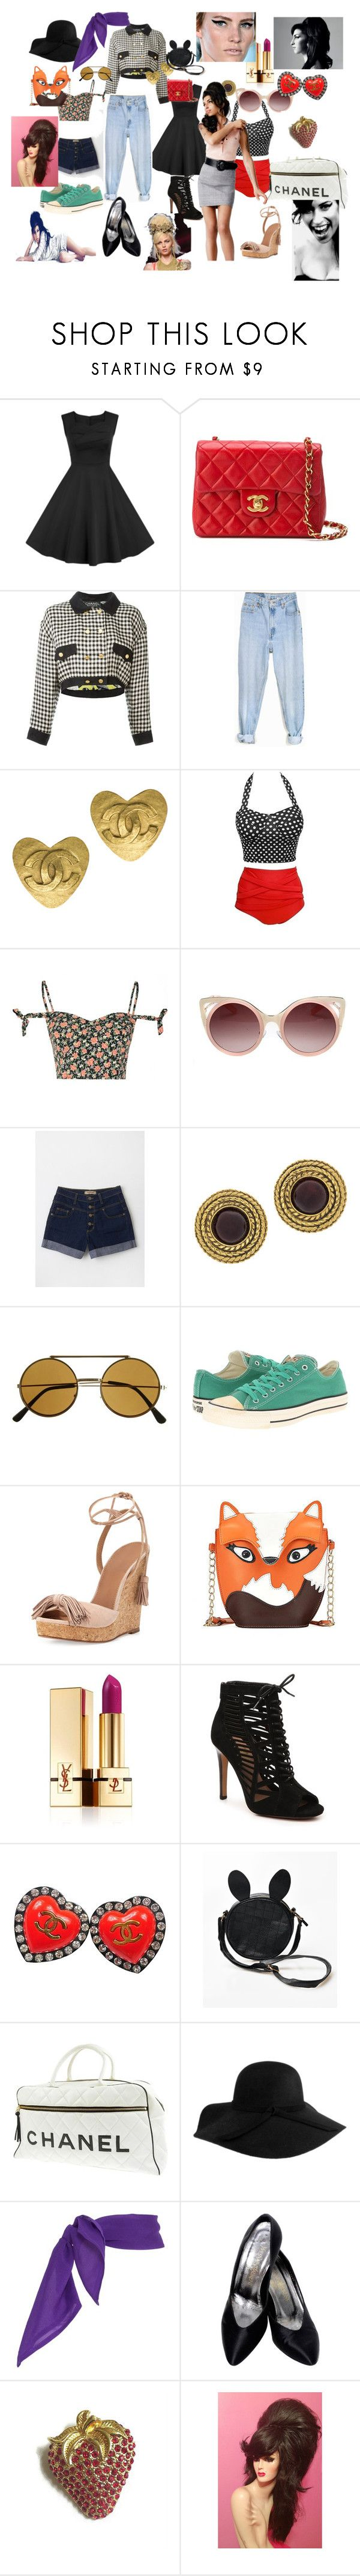 Lovely Vintage by jenny-ragnwaldh on Polyvore featuring Glamorous, Chanel, Levi's, Aquazzura, Yves Saint Laurent, Converse, WithChic, Amy Winehouse, Fred Perry and vintage